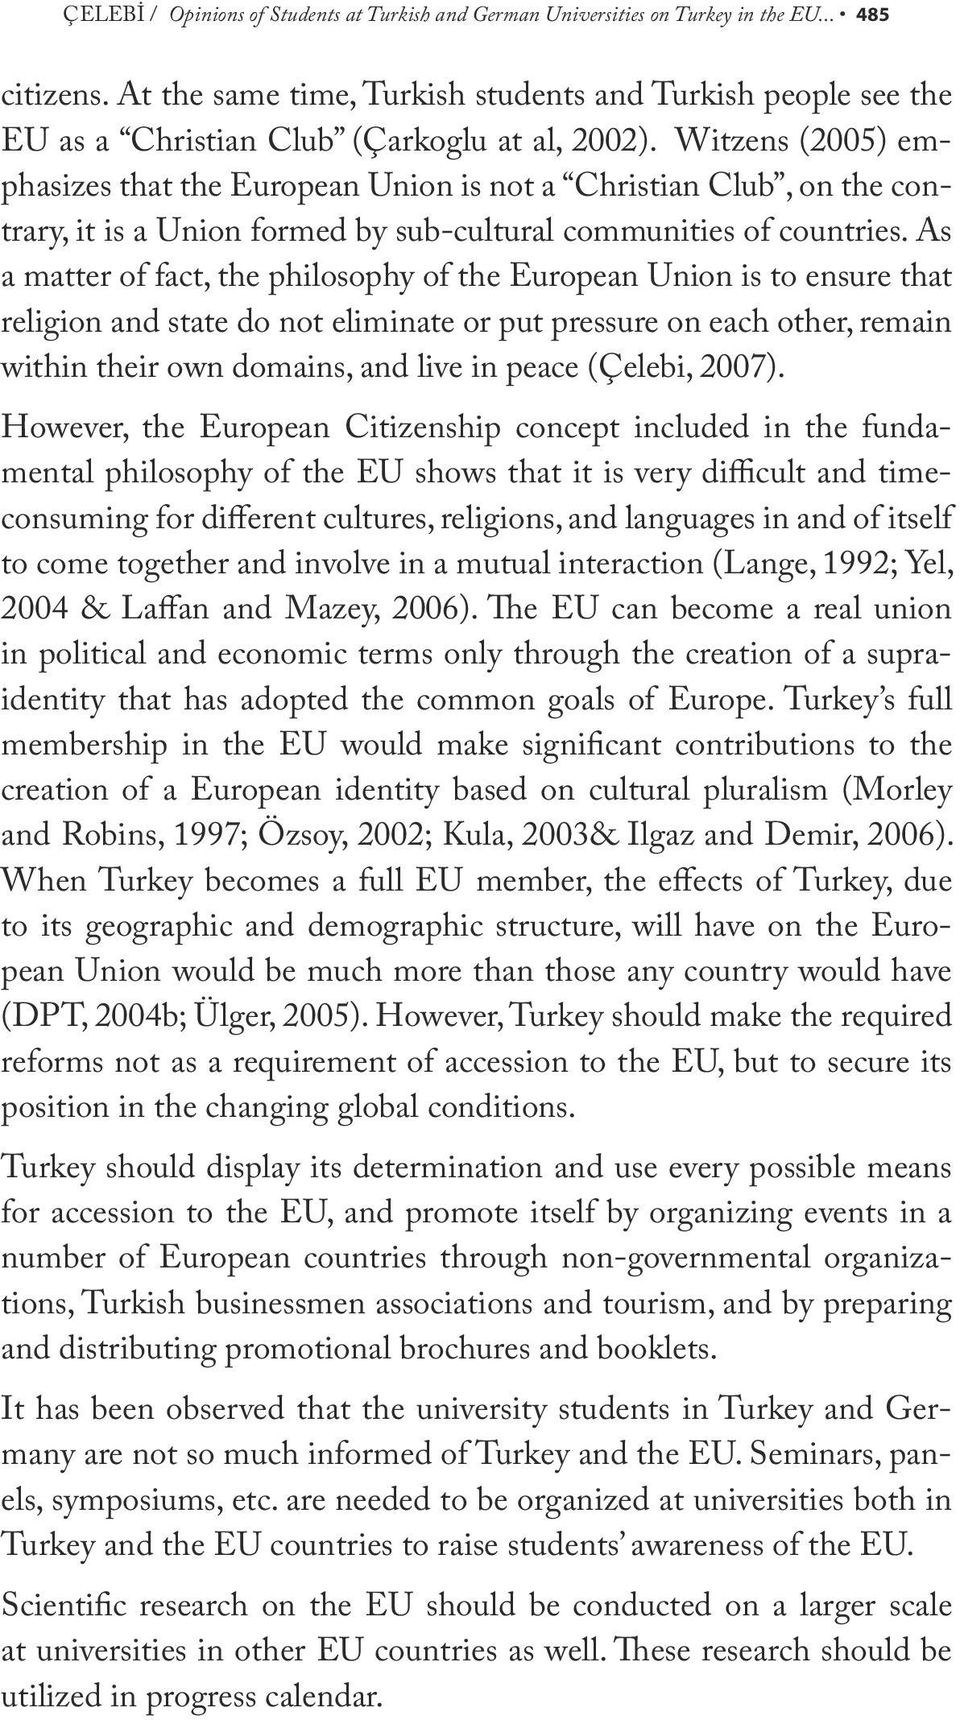 Witzens (2005) emphasizes that the European Union is not a Christian Club, on the contrary, it is a Union formed by sub-cultural communities of countries.